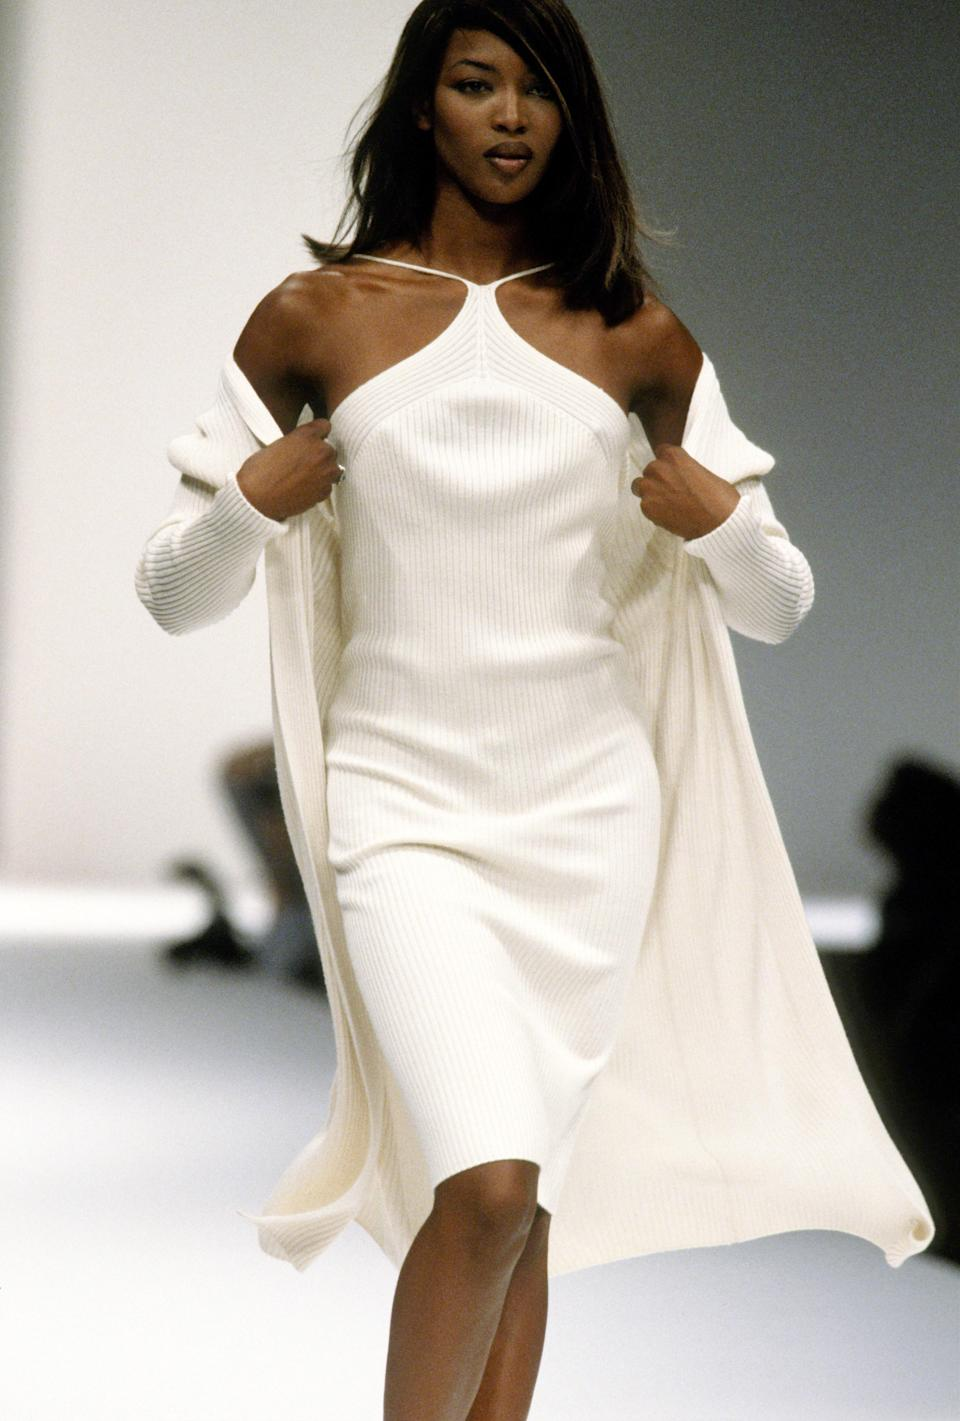 Naomi Campbell at the Laura Biagiotti Spring 1996 show